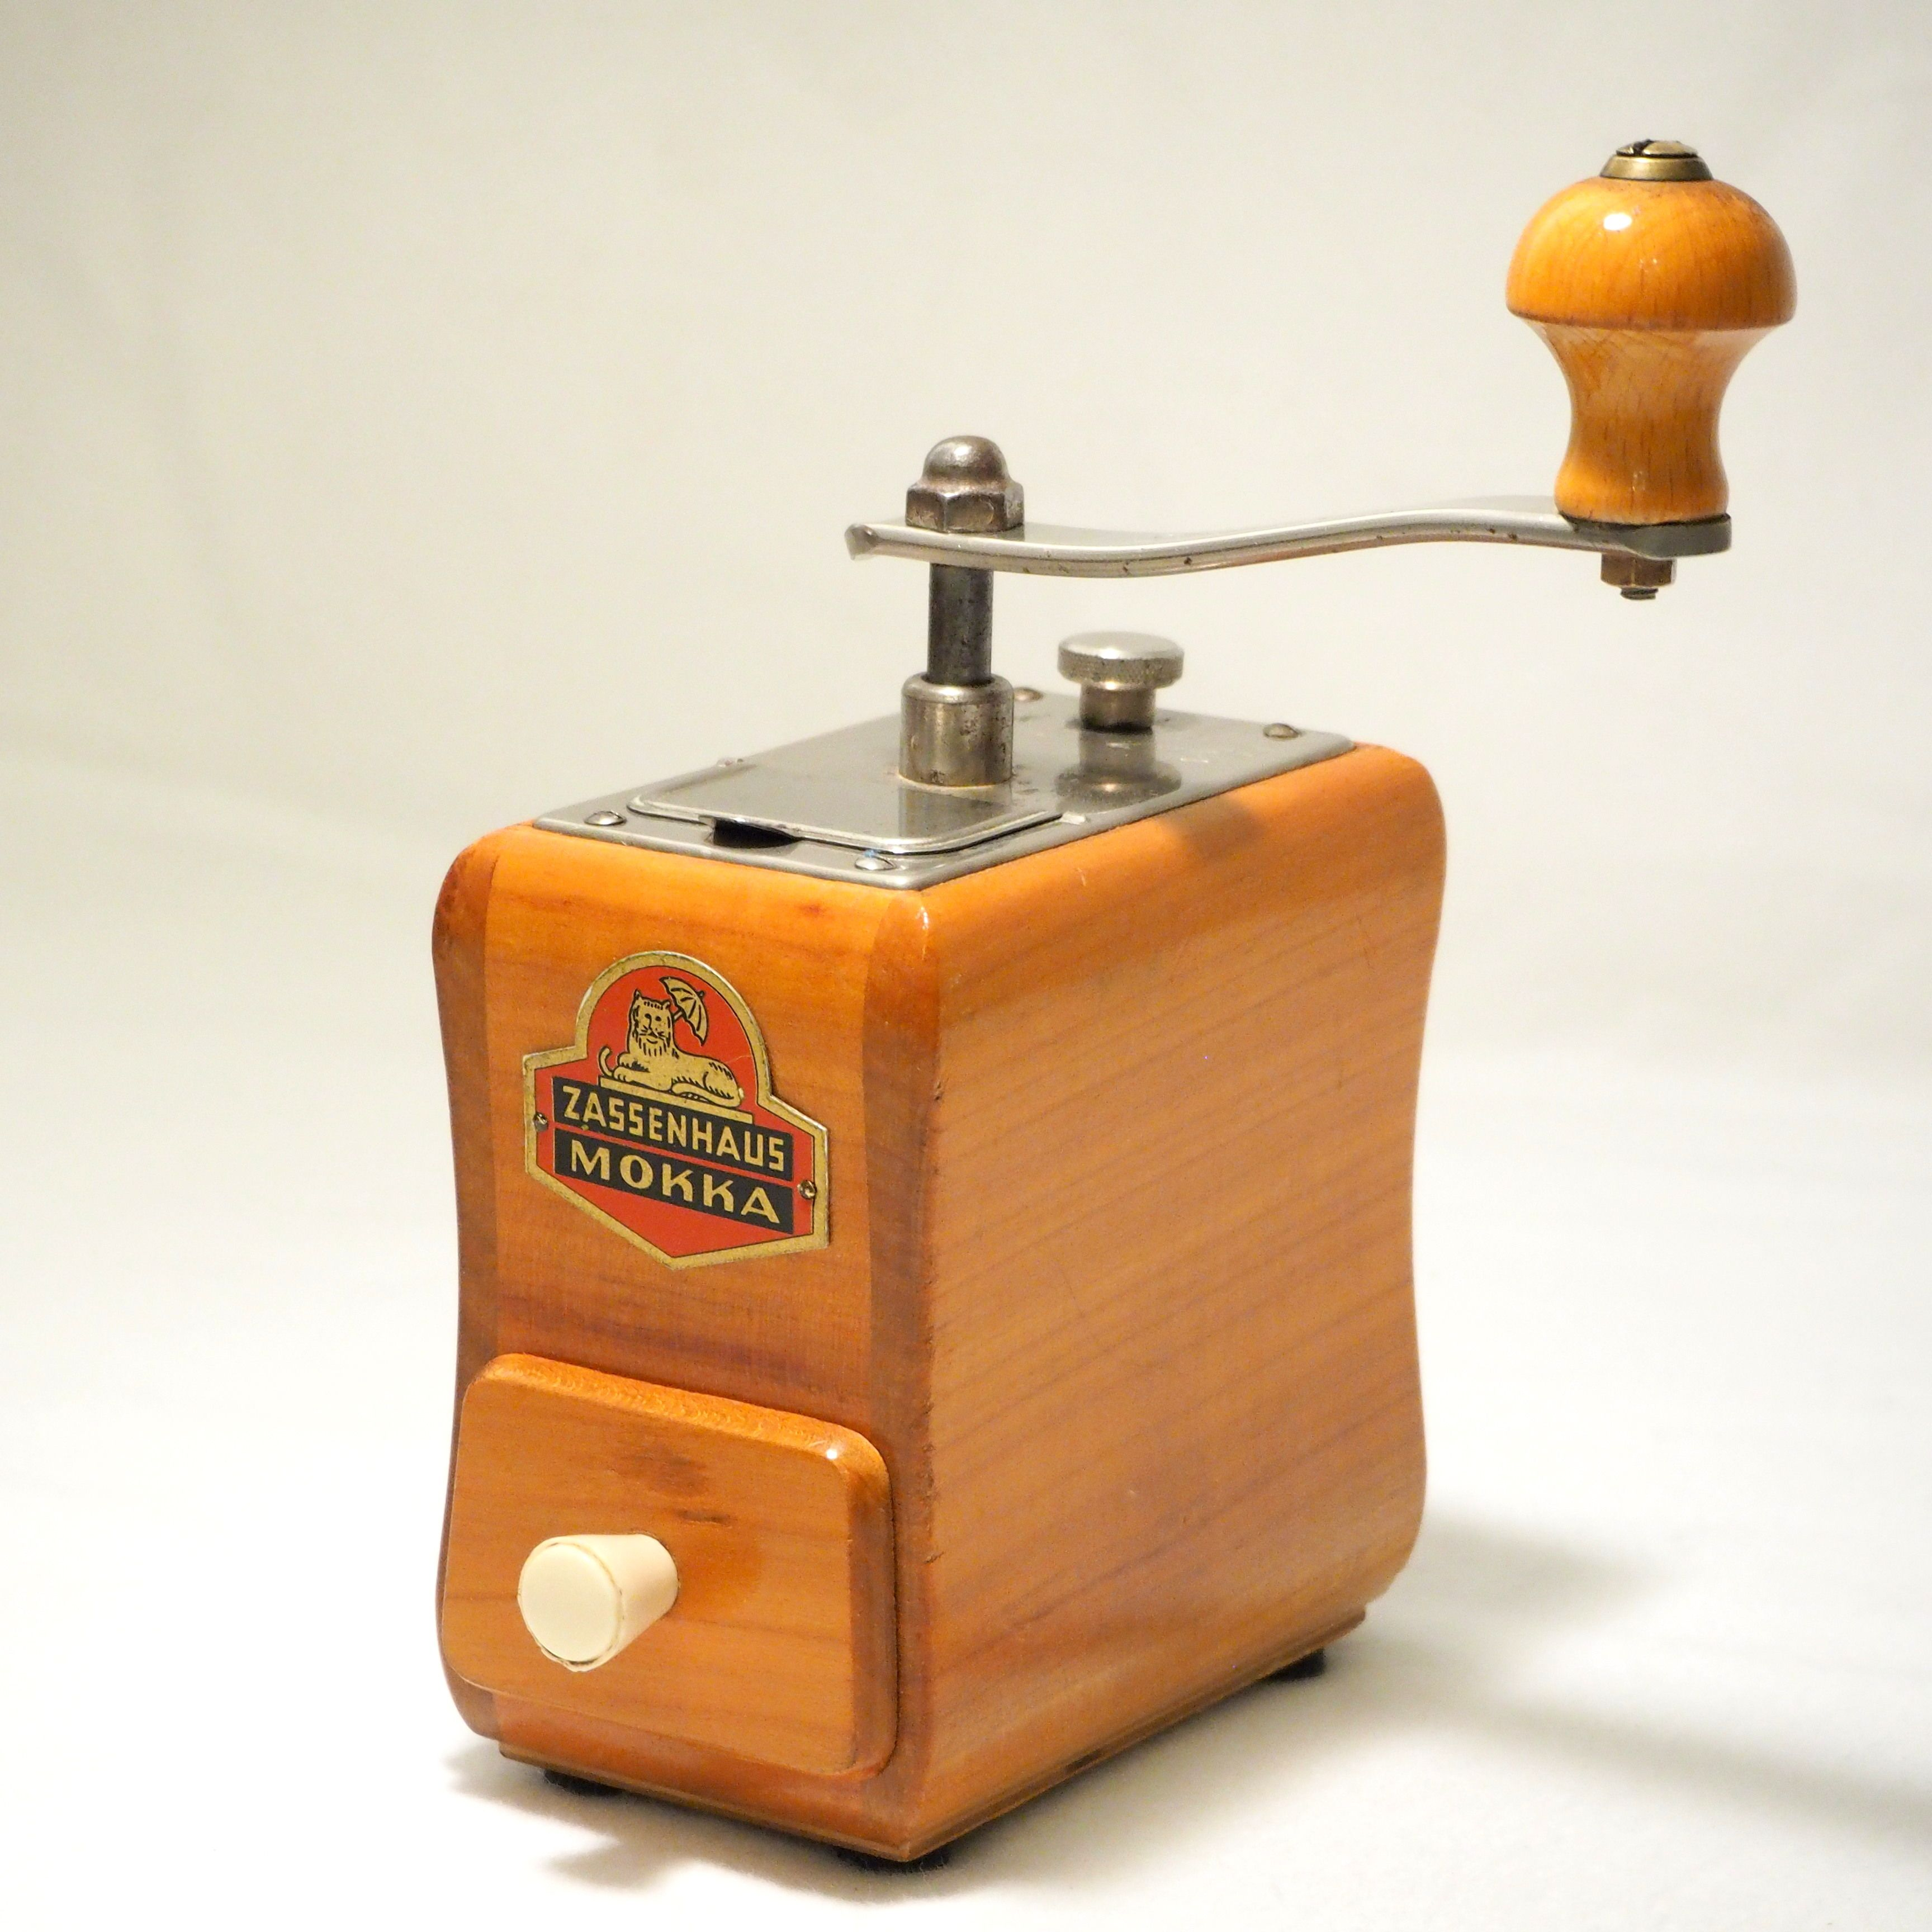 Vintage German Coffee Grinders Zassenhaus 496 With Red Metal Logo Rare In Such Good Condition Nice Cherry Wood